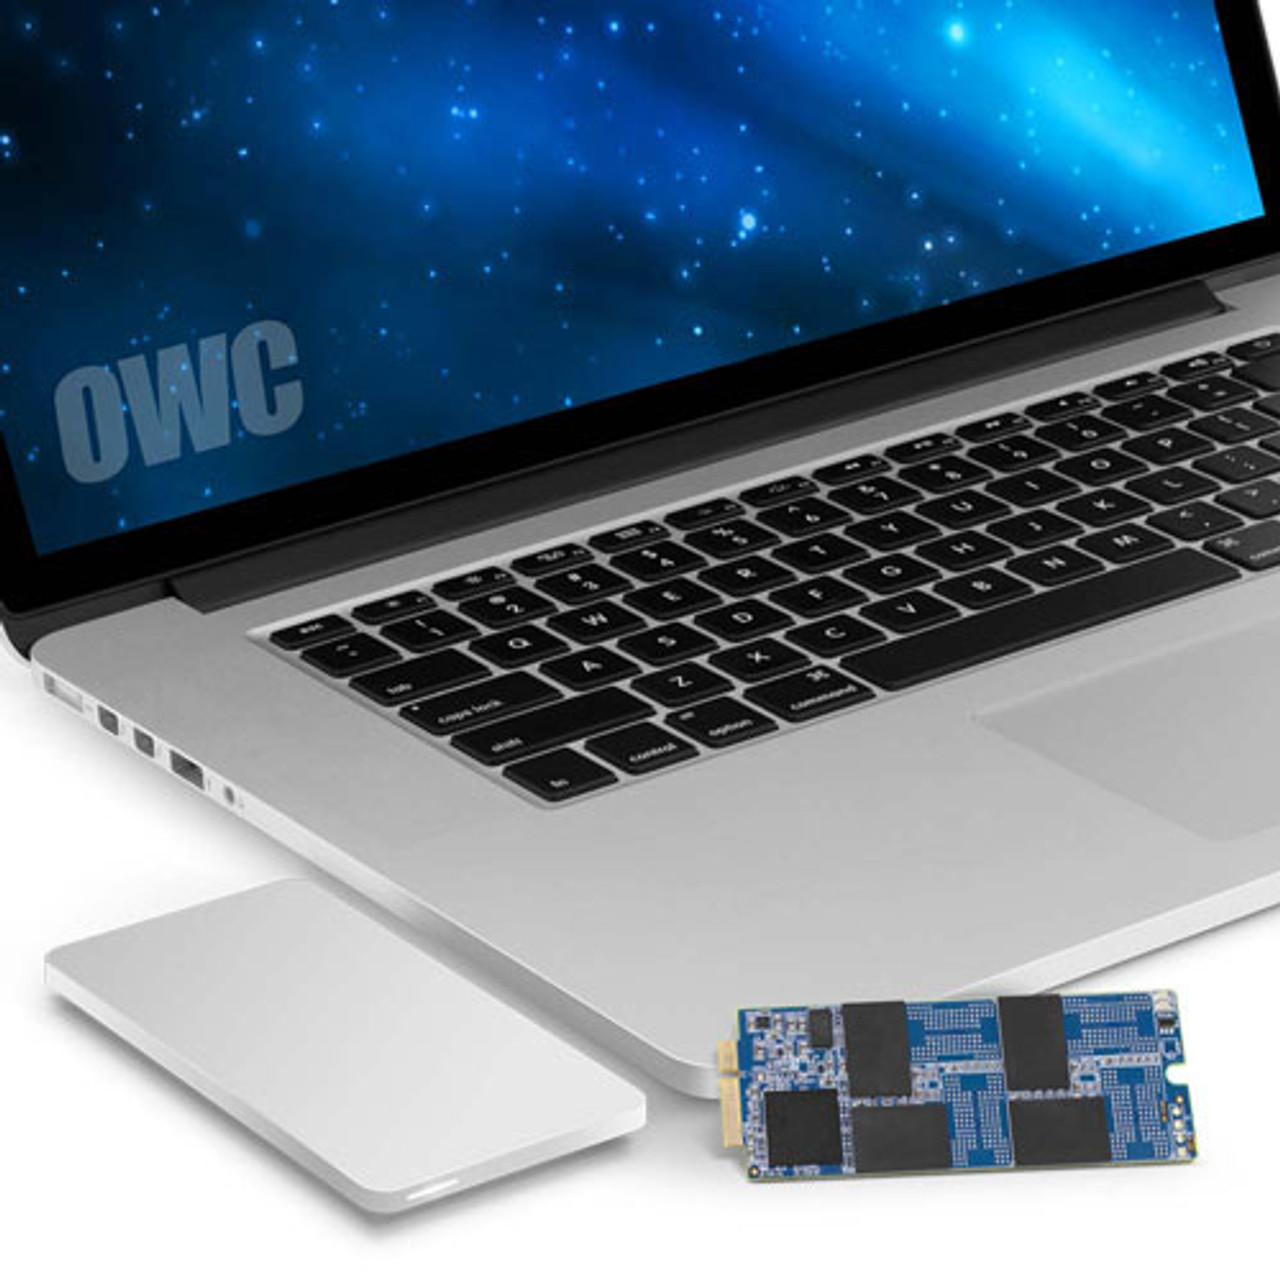 OWC 500GB Aura Pro 6G Solid-State Drive with Upgrade Kit for MacBook Pro with Retina Display (2012 - Early 2013)